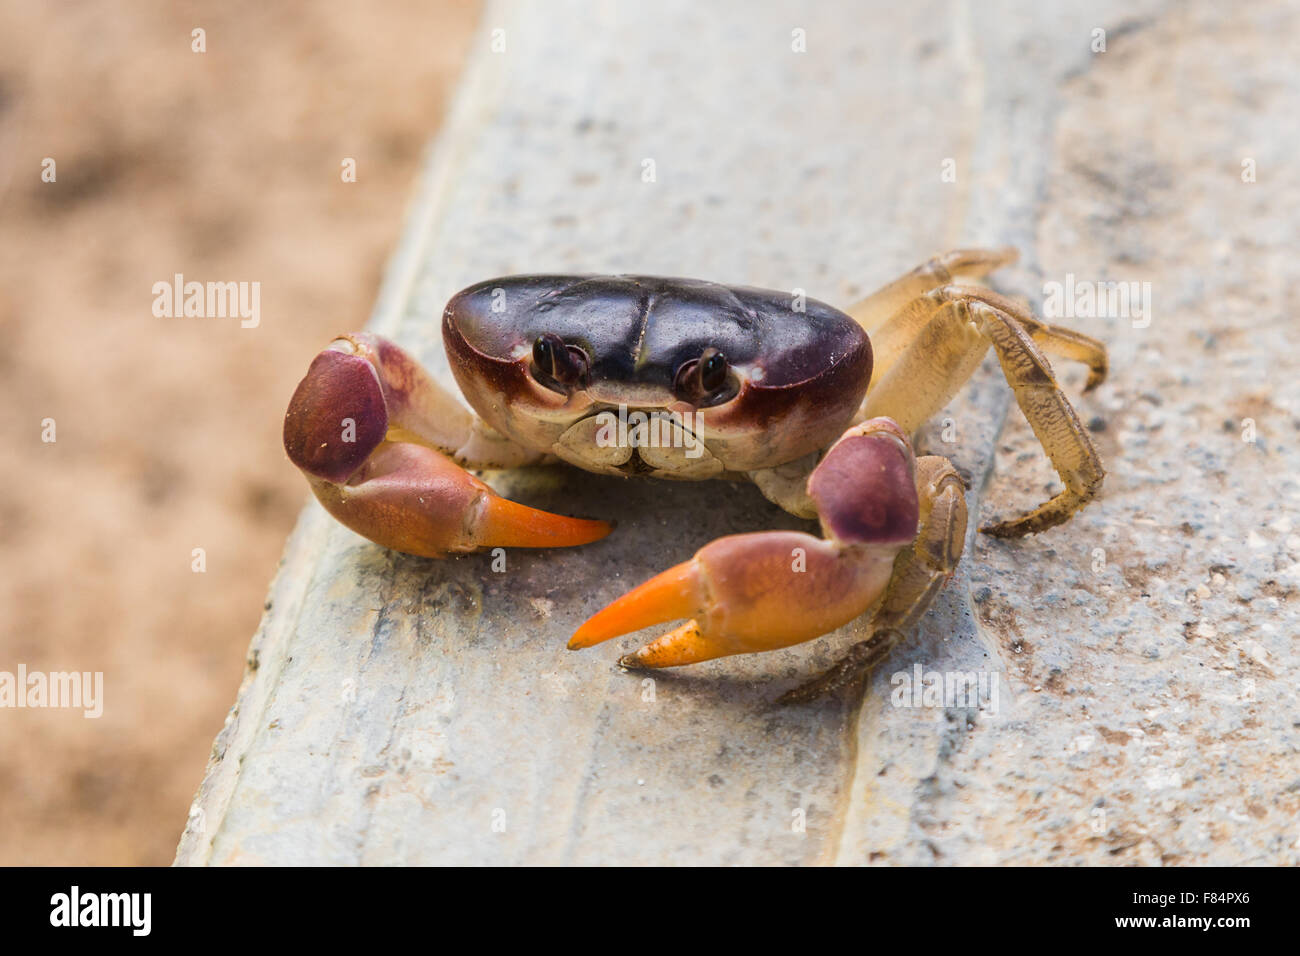 Colourful crab missing three legs - Stock Image